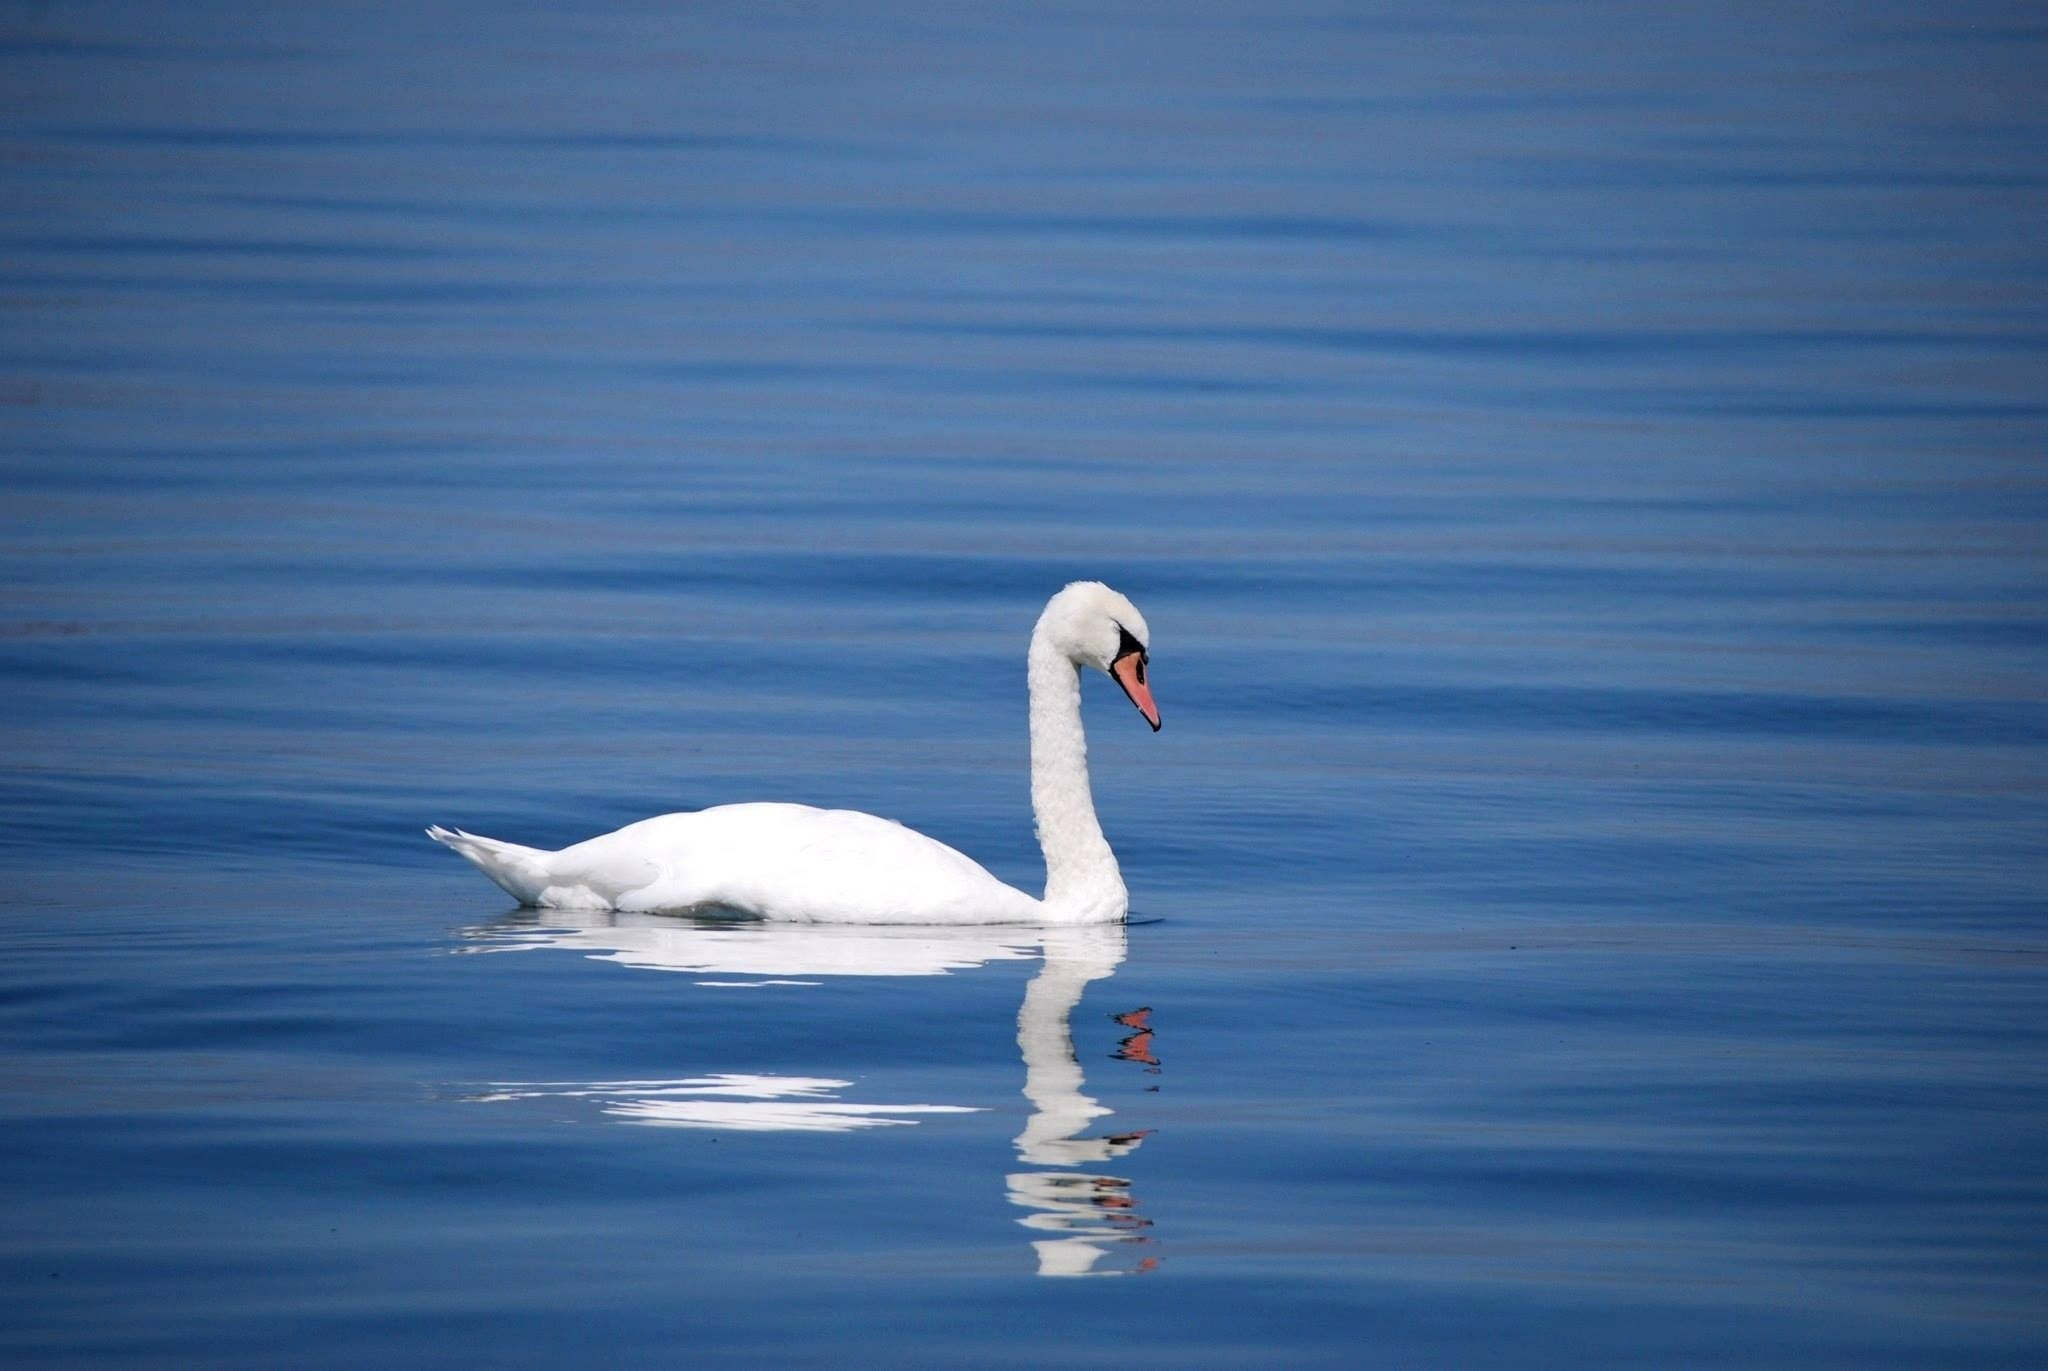 White Goose on Body of Water